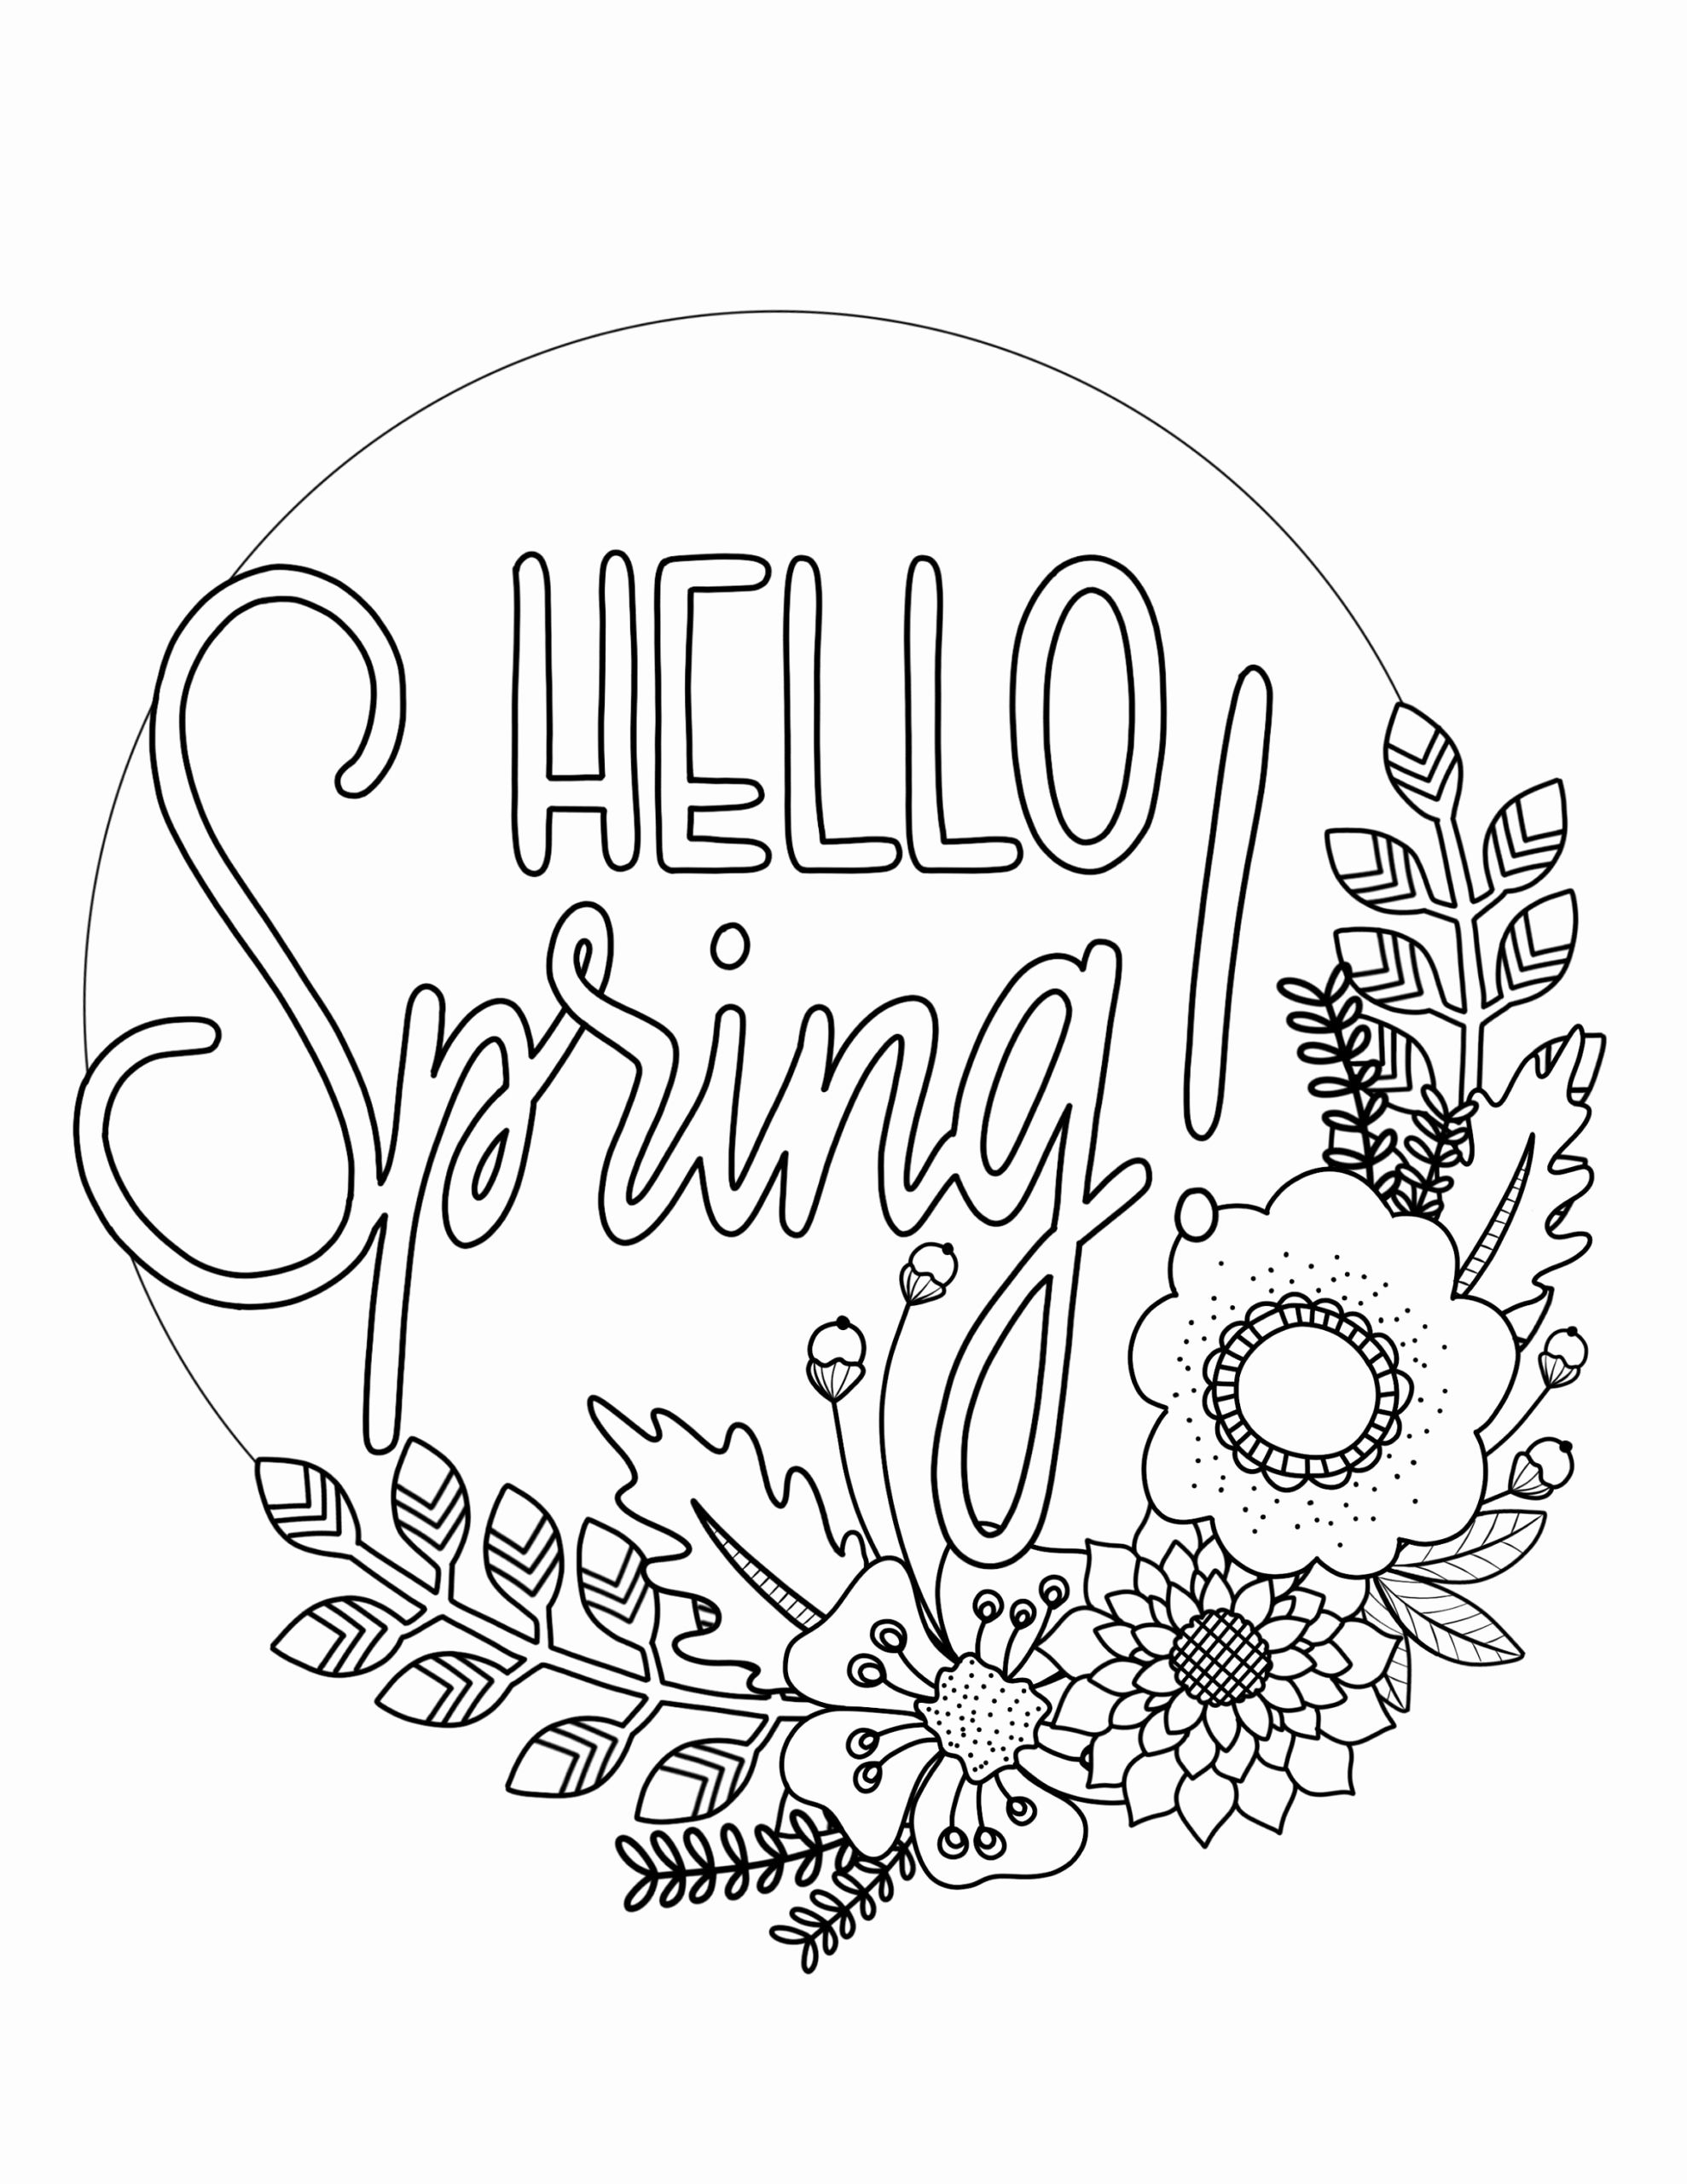 Coloring Pages For Kids Spring In 2020 Spring Coloring Pages Easter Coloring Pages Spring Coloring Sheets